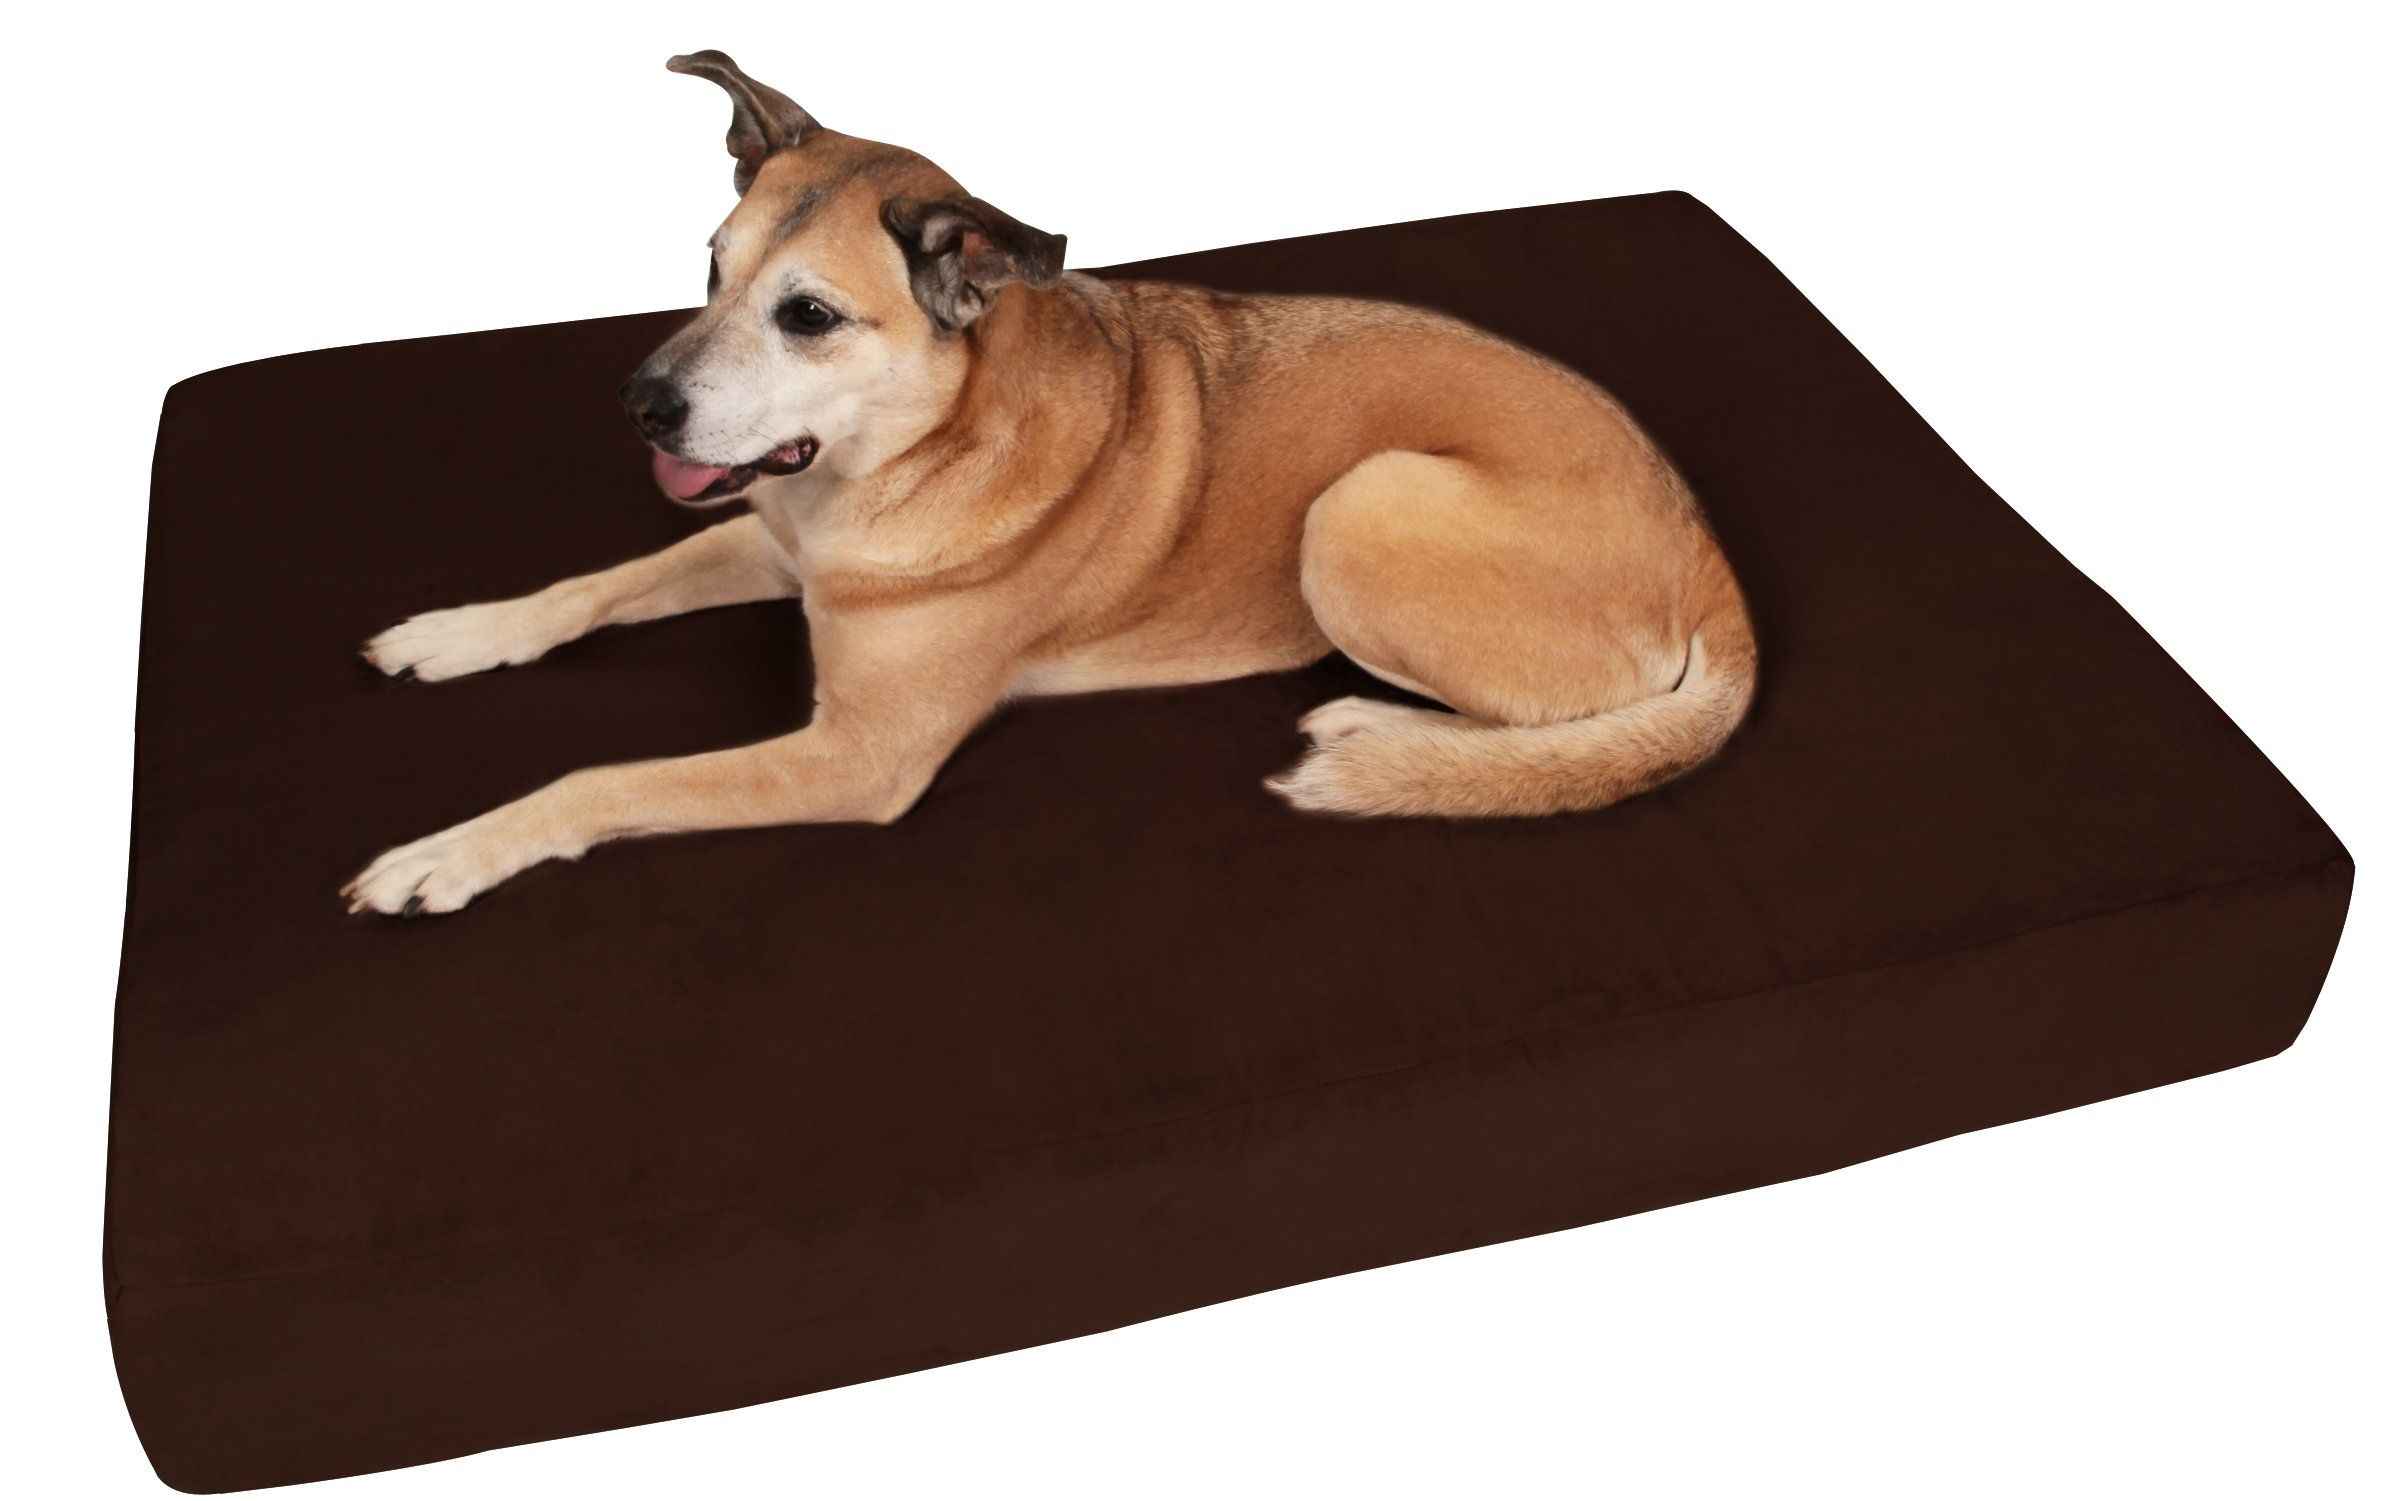 Big Barker 7'' Pillow Top Orthopedic Dog Bed - Large Size - 48 X 30 X 7 - Chocolate - For Large and Extra Large Breed Dogs (Sleek Edition) by Big Barker (Image #1)